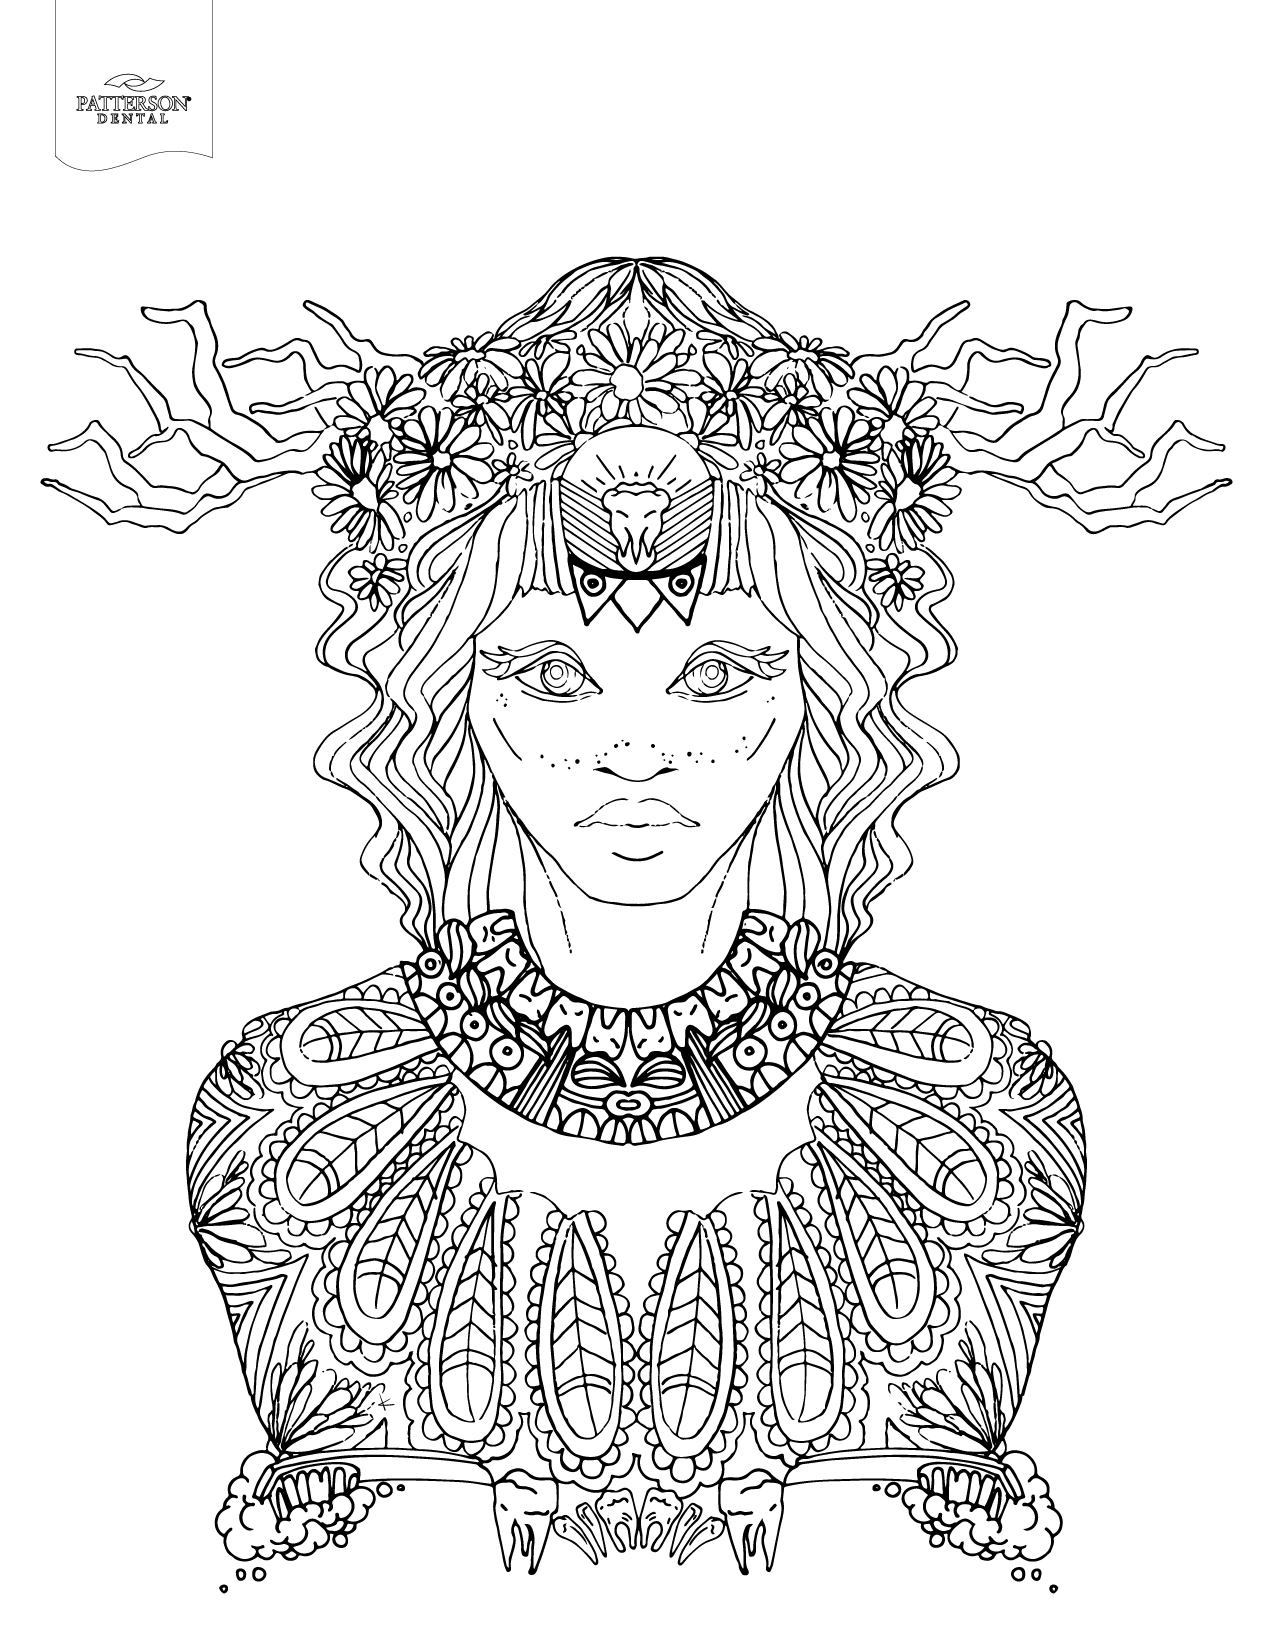 10 Toothy Adult Coloring Pages [Printable] – Off the Cusp   printable colouring pages for adults